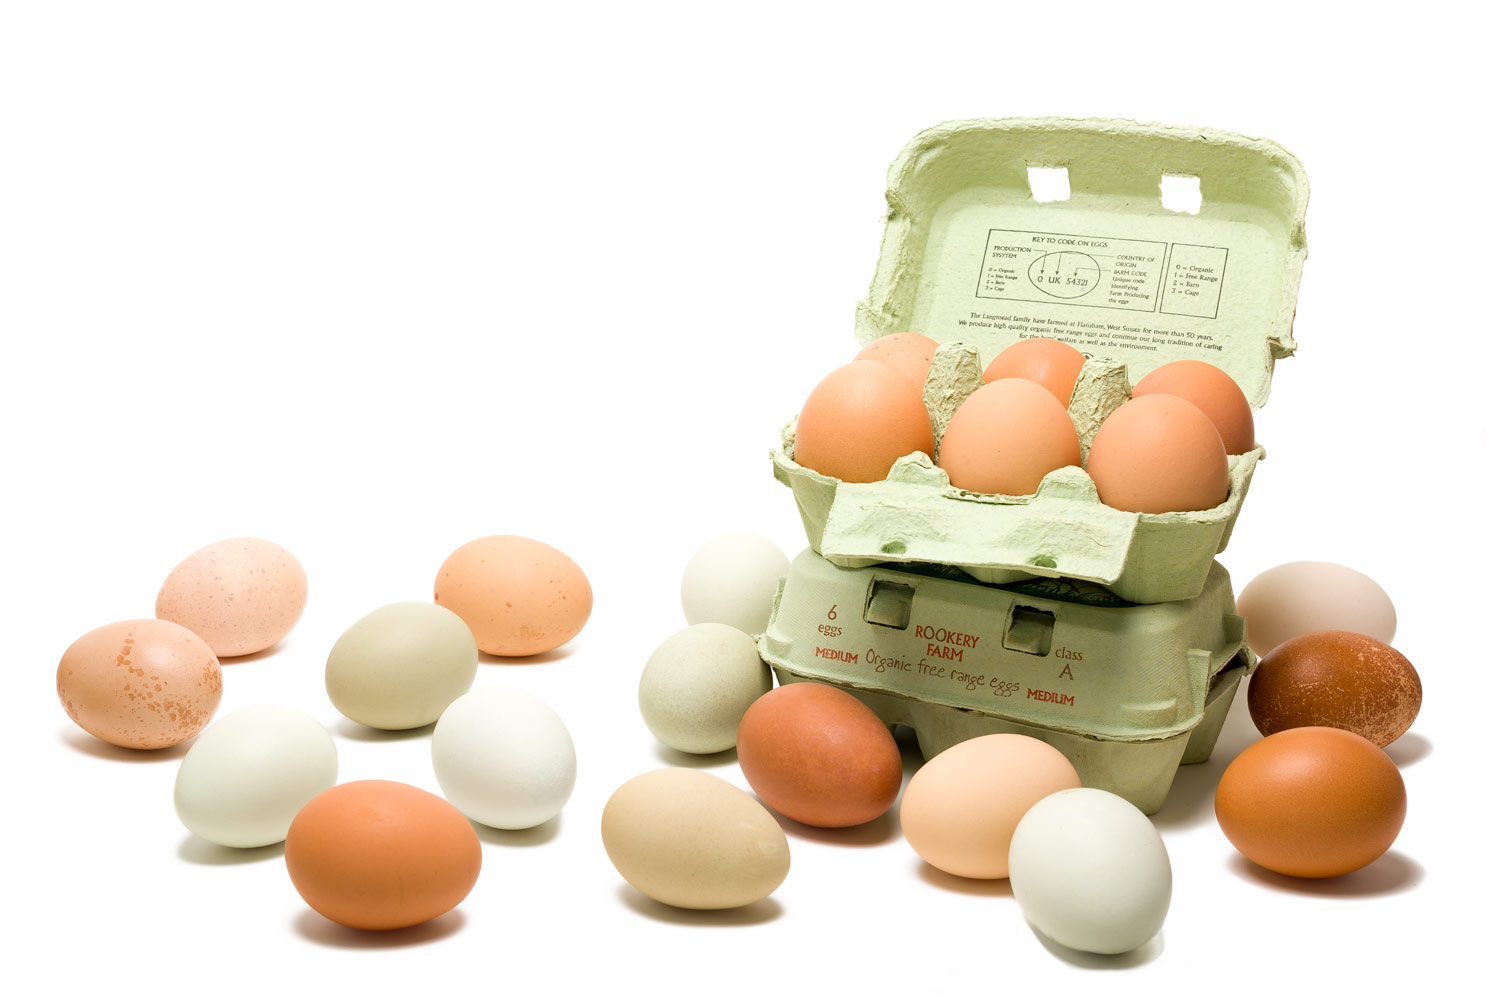 Rookeryeggs-header-transparency.png